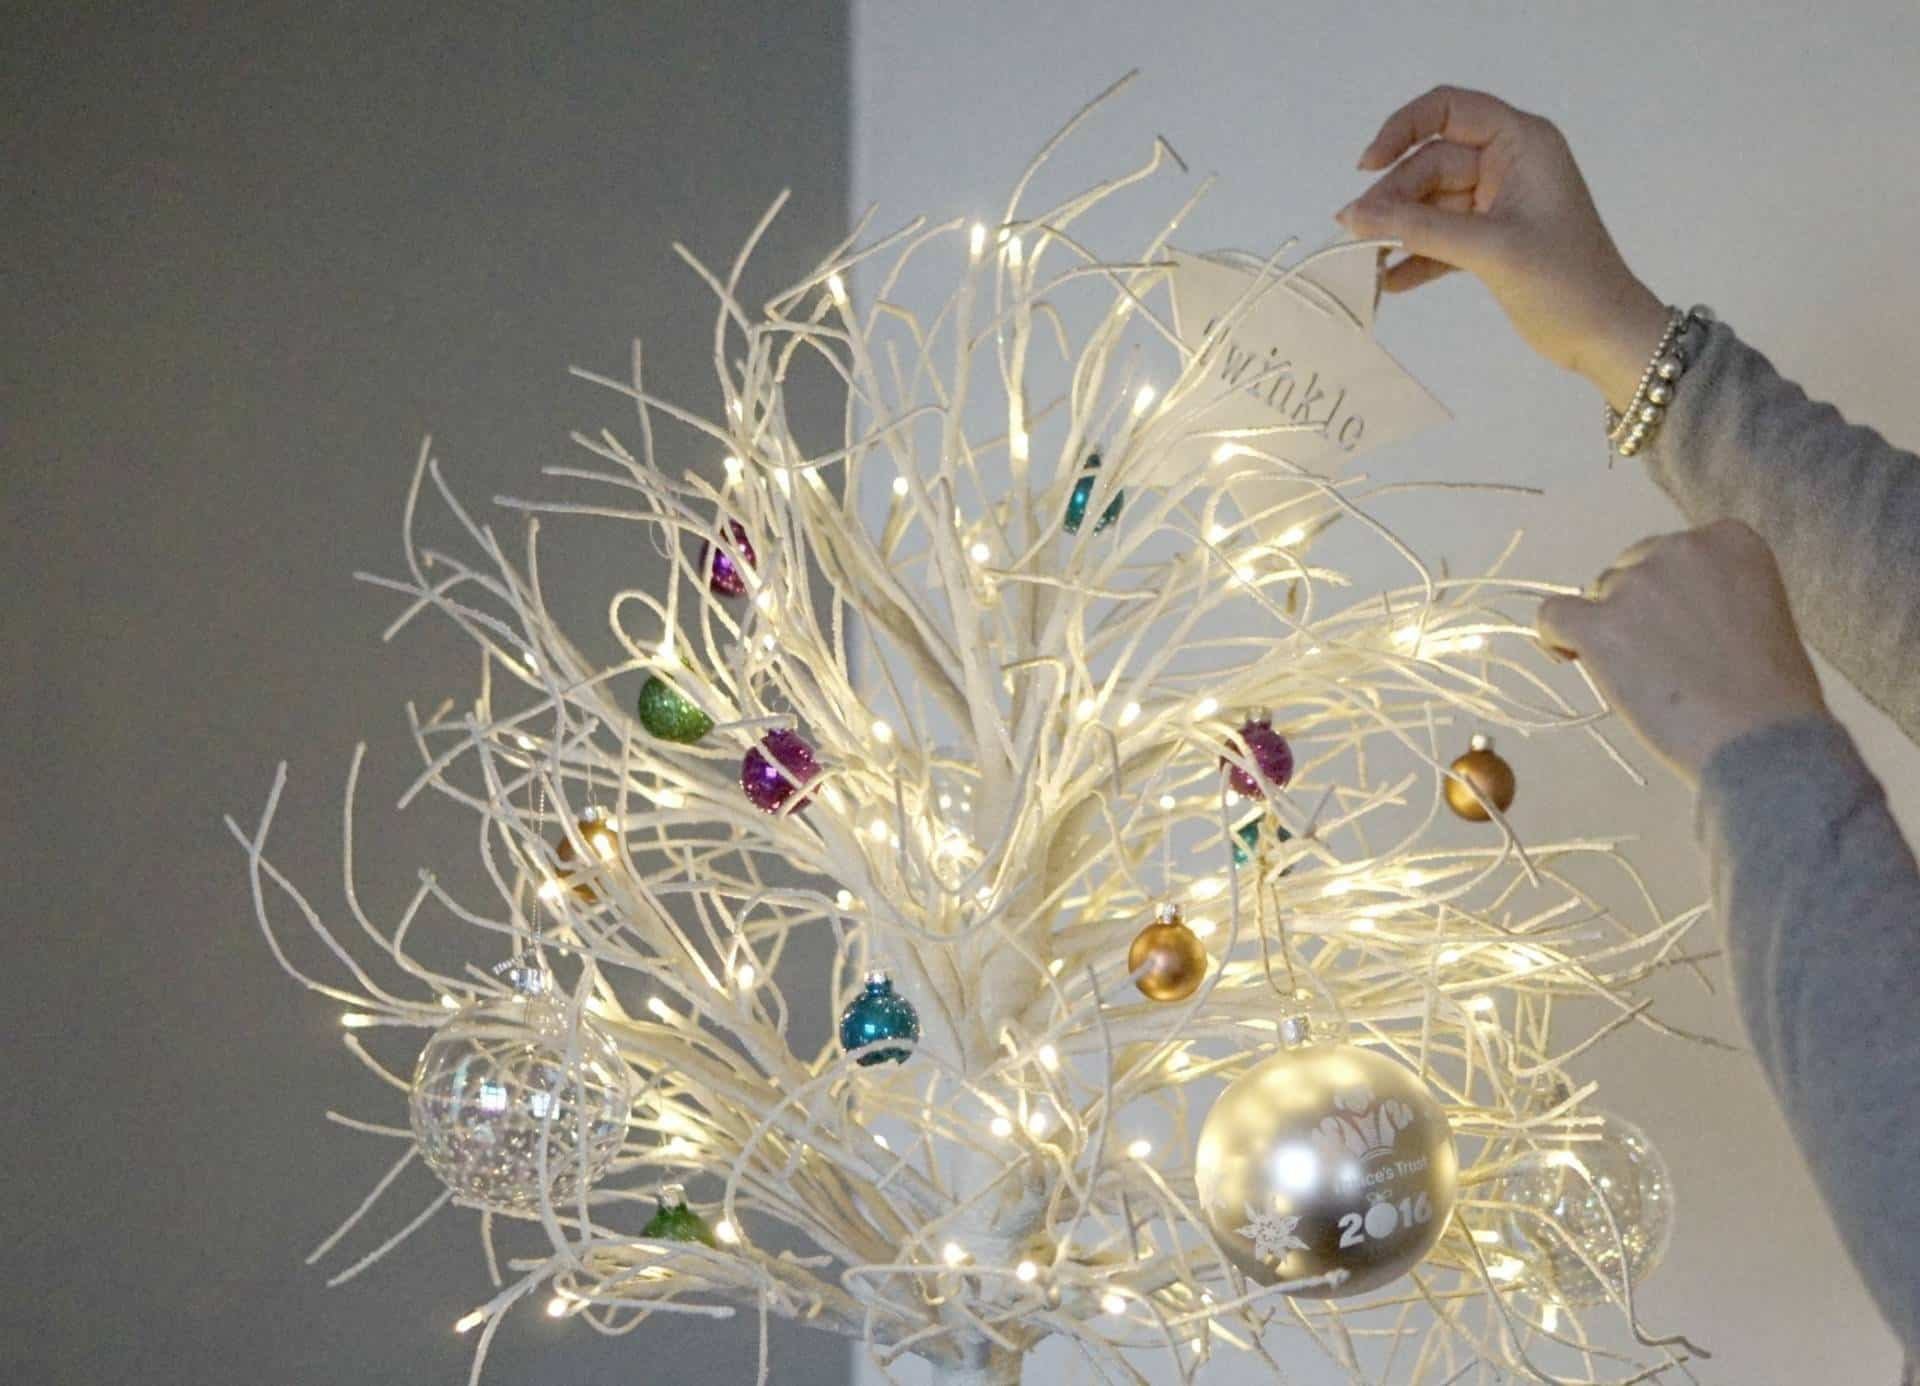 Twinkle And Brights with Homesense and Princes Trust